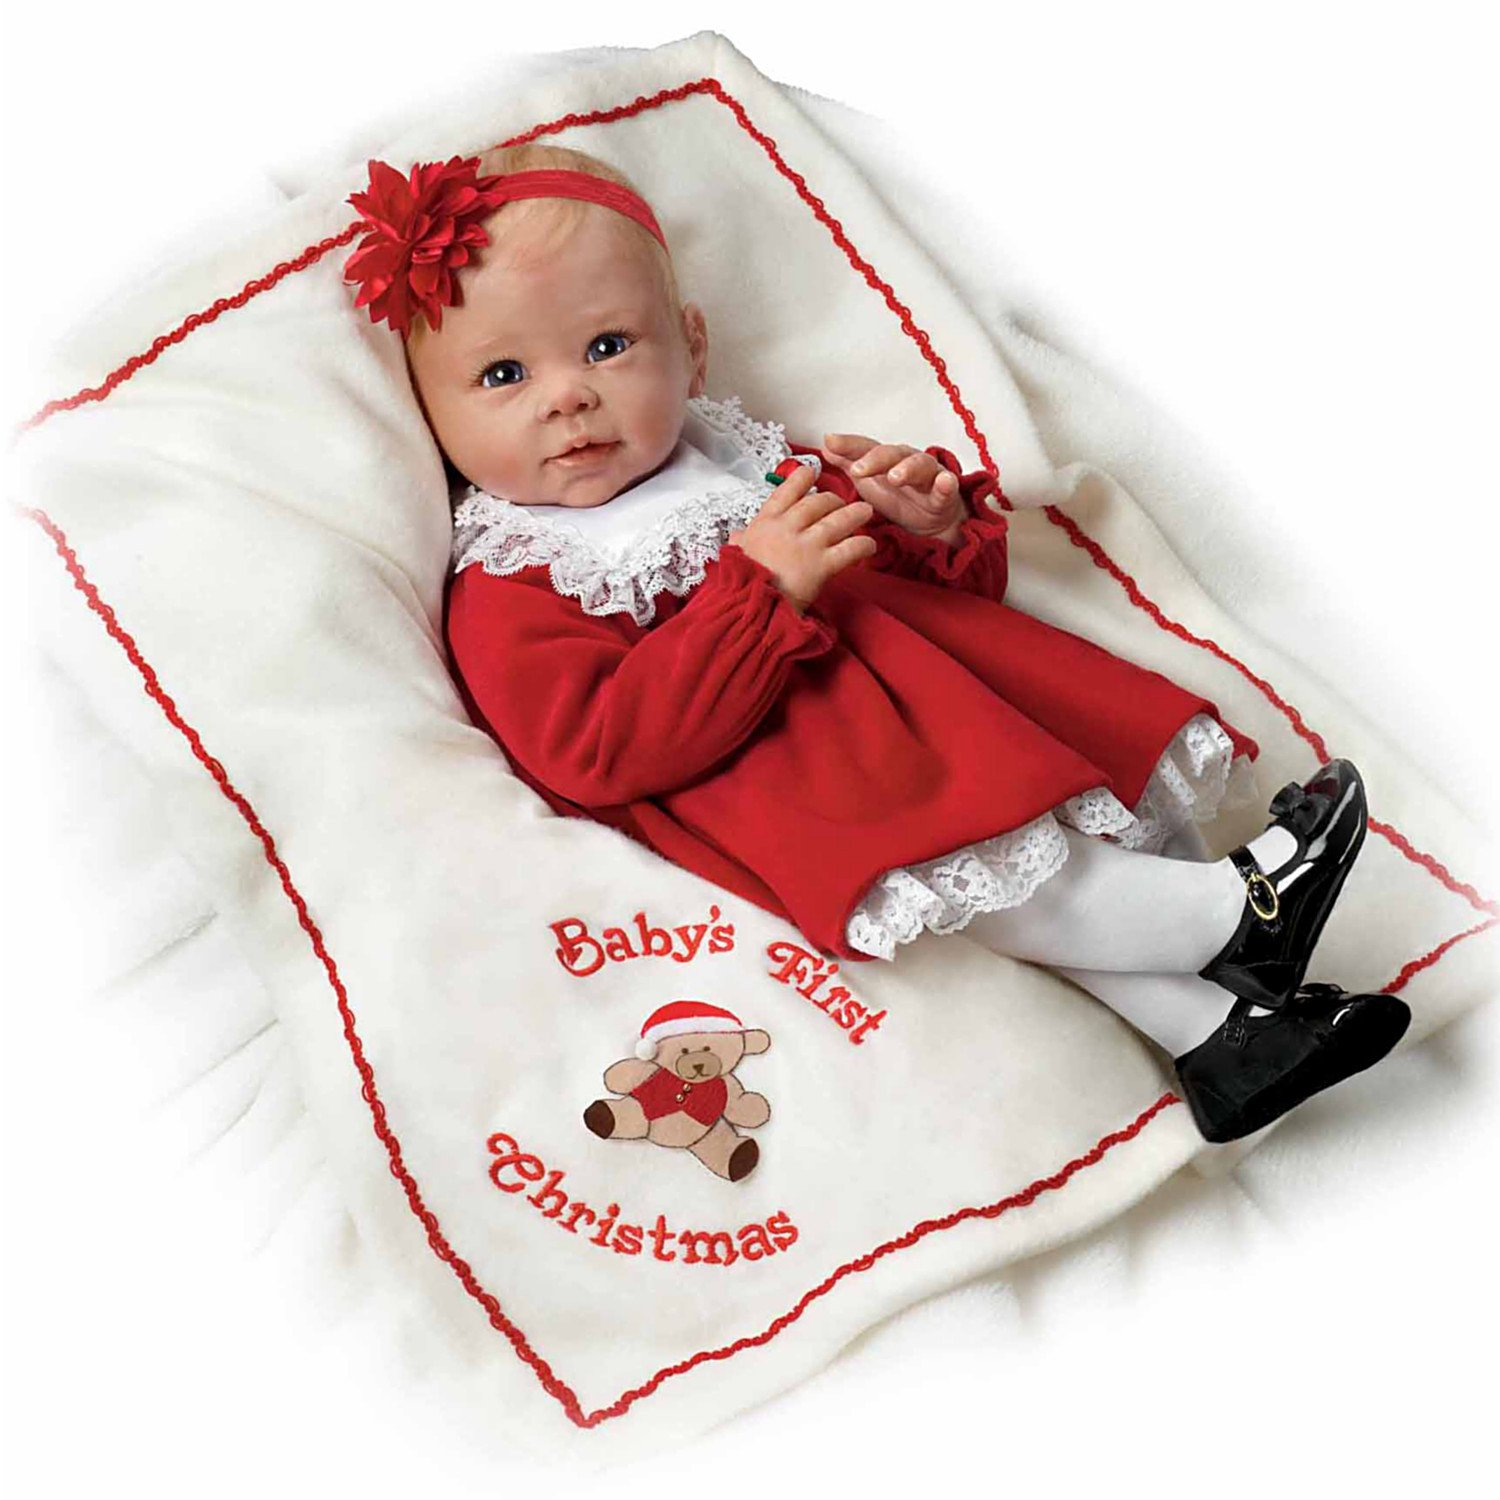 21'' Ashton Drake Baby's First Christmas with Basket and Teddy Bear Signature Edition Doll NEW 2014 0302034001 THINK CHRISTMAS!! by The Ashton-Drake Galleries by The Ashton-Drake Galleries